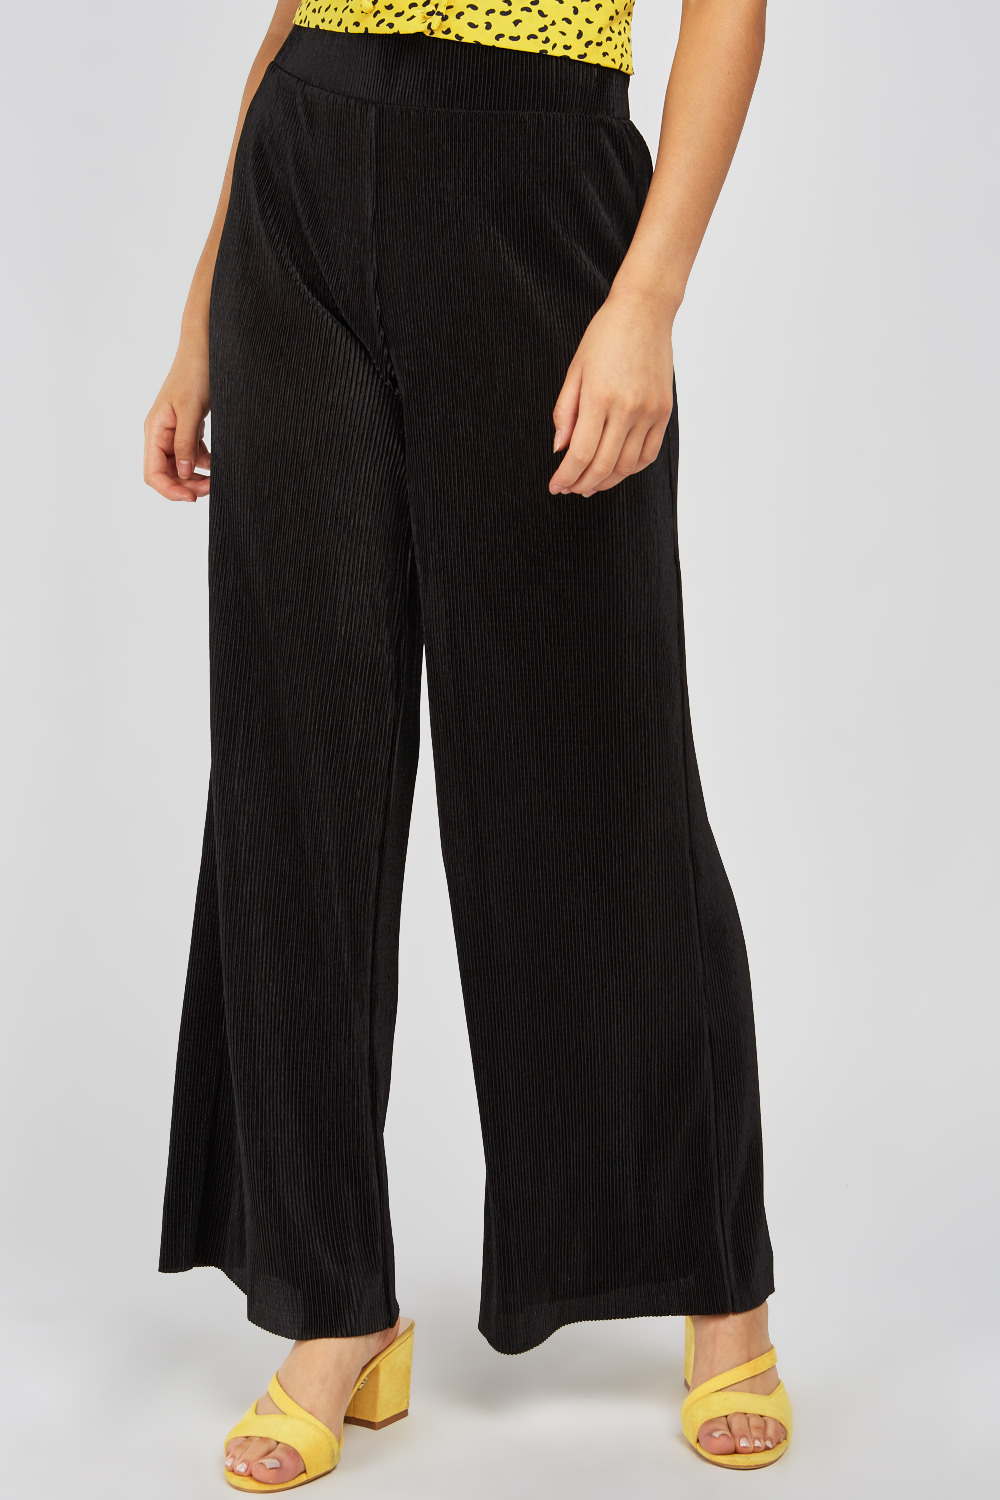 Plisse Wide Leg Trousers Black Just 163 5